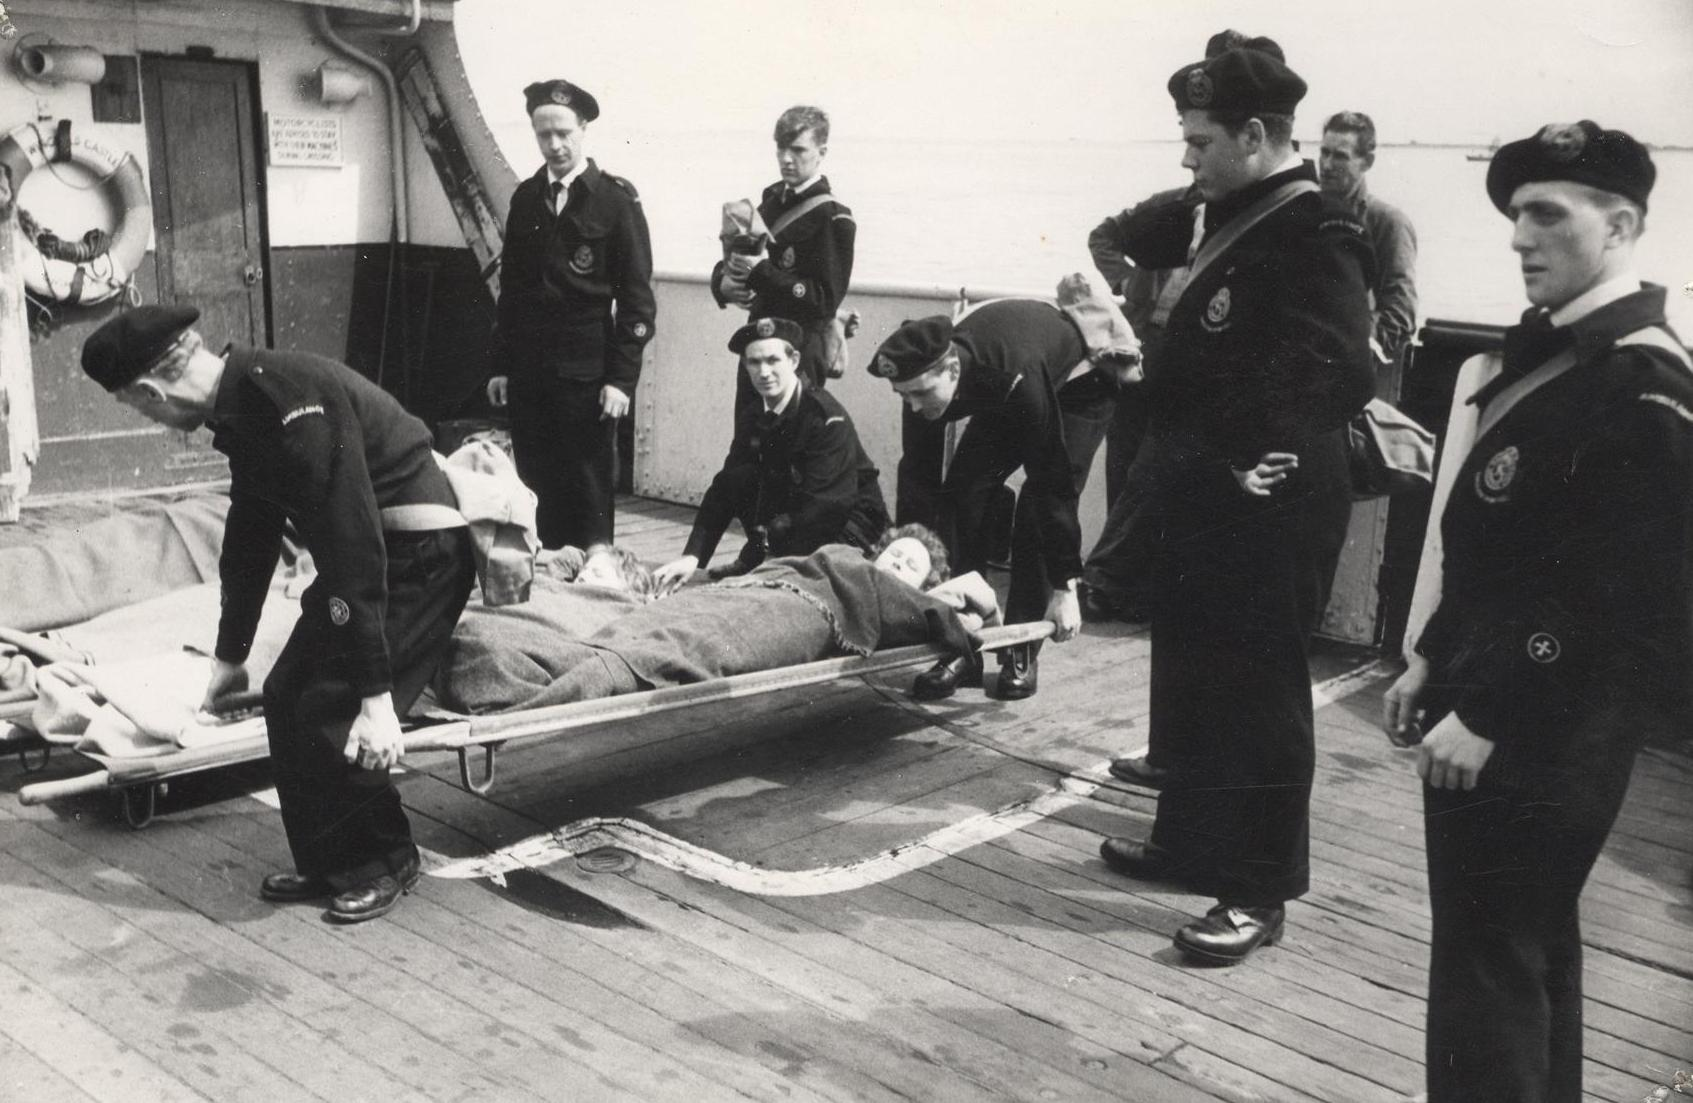 A simulated casualty during Exercise Exodus 28 May 1961 (archive ref CD-103) (12)